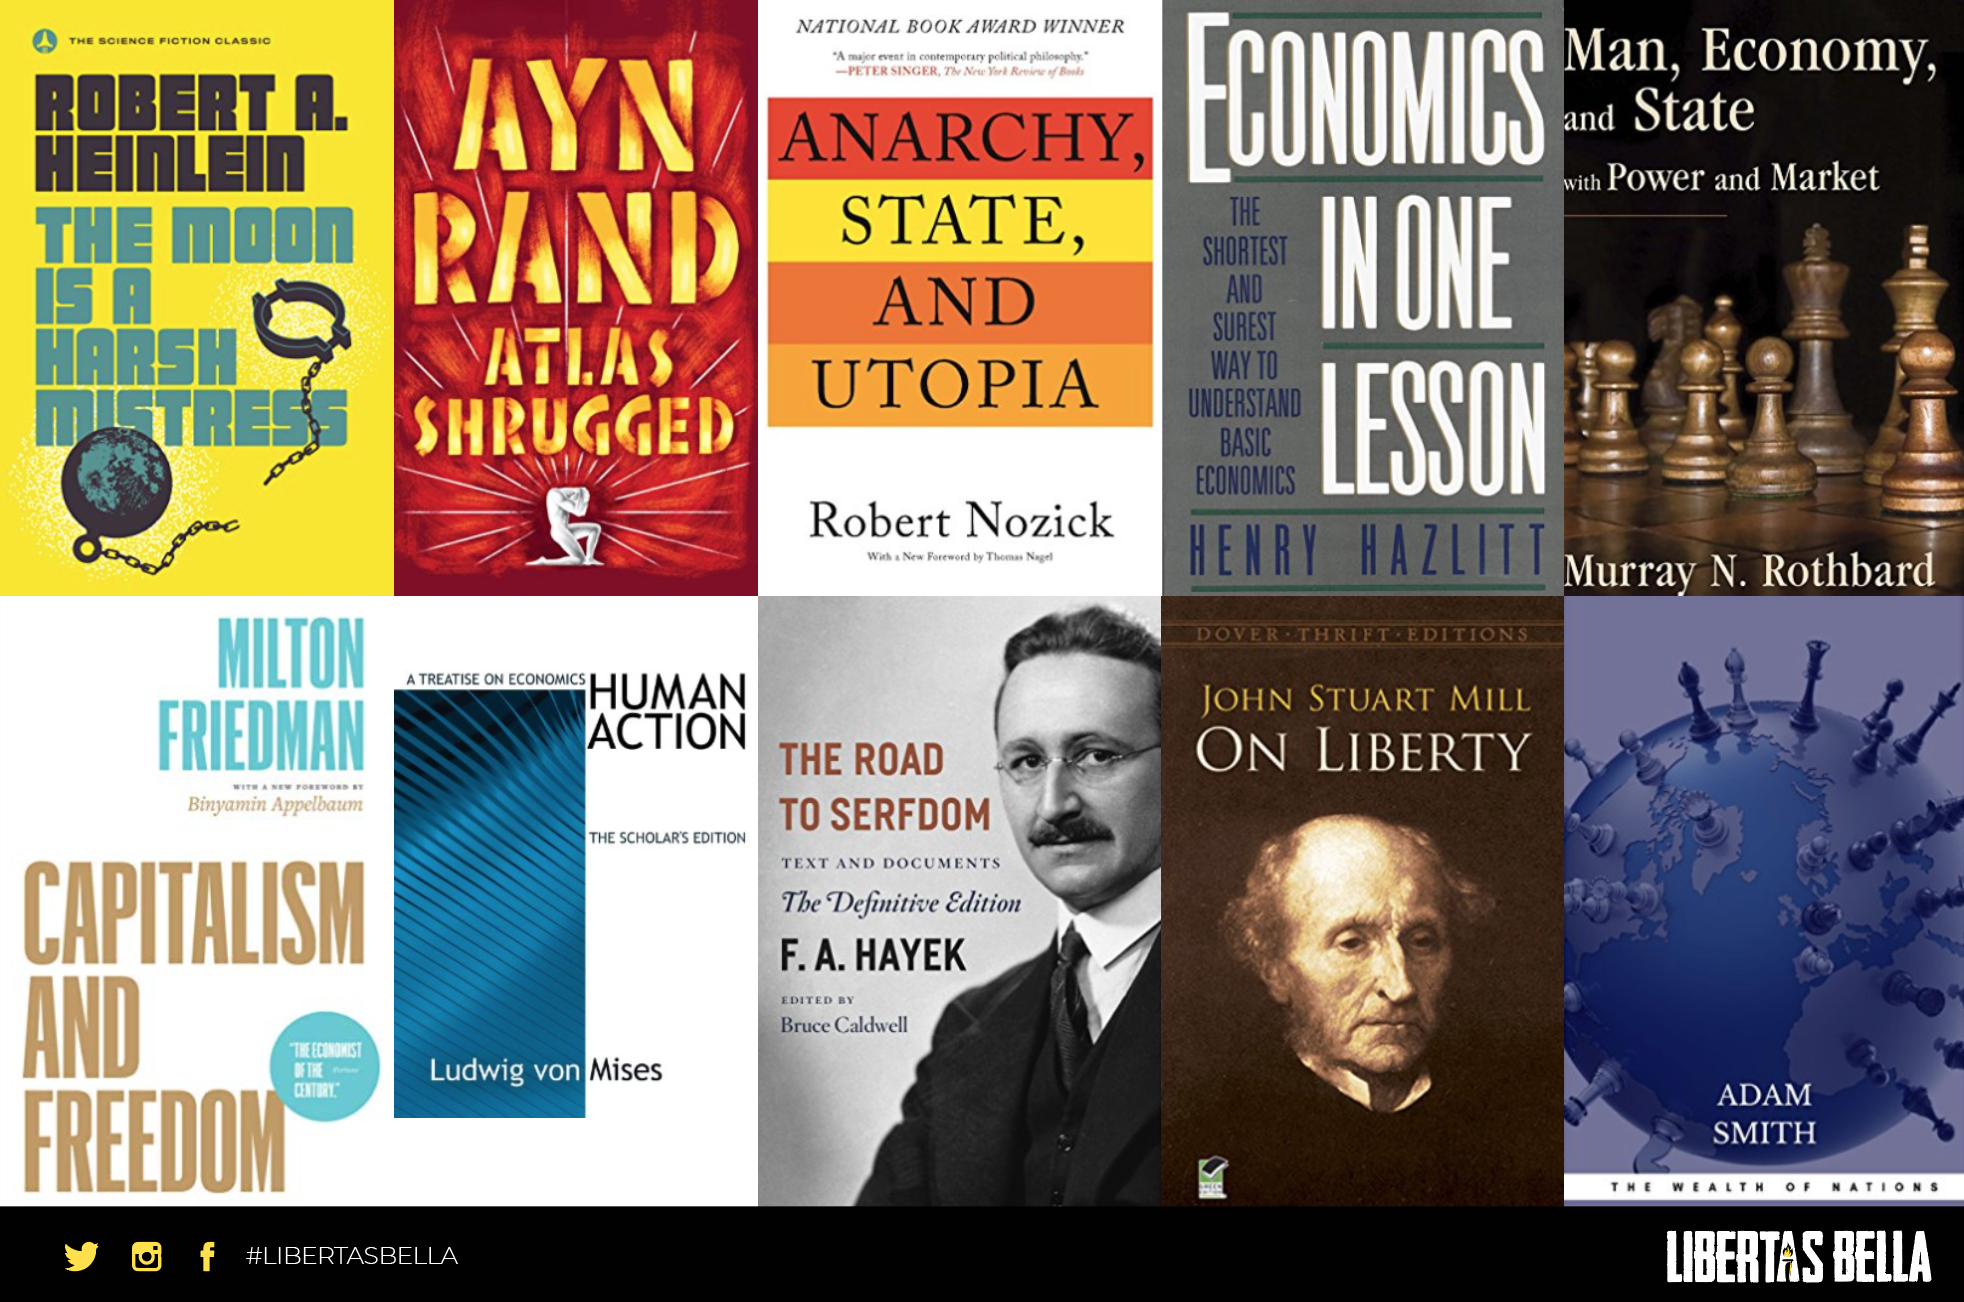 Libertarian books - Collage of book covers from Ayn Rand, Murray Rothbard, and more